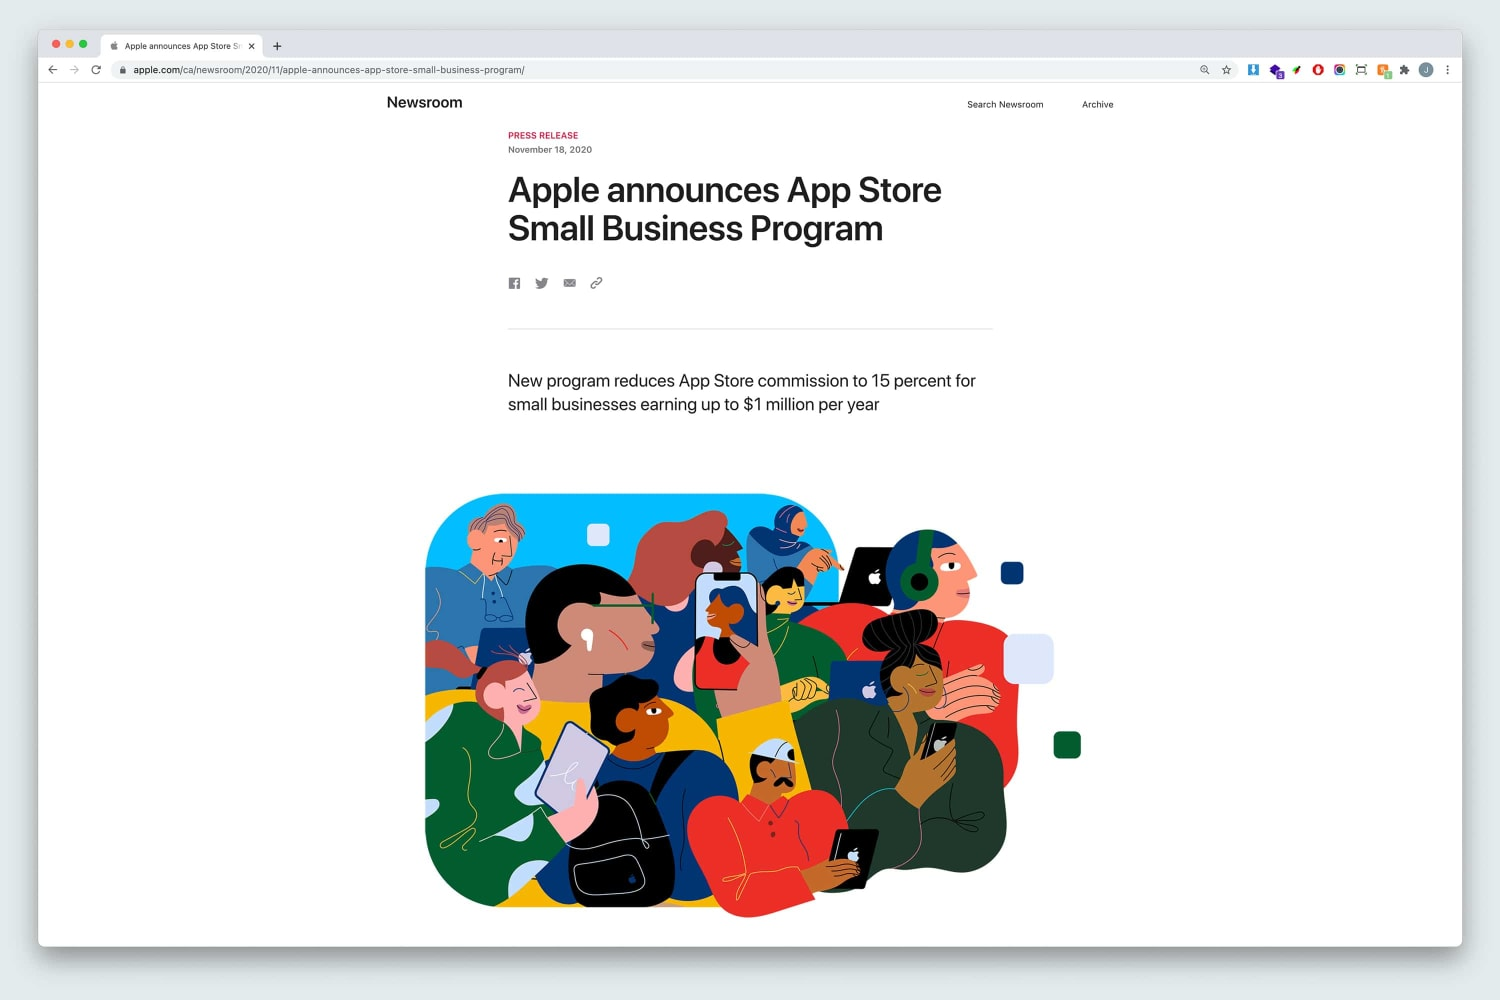 98-of-app-developers-may-benefit-from-lower-app-store-fees-in-january-20201130-1